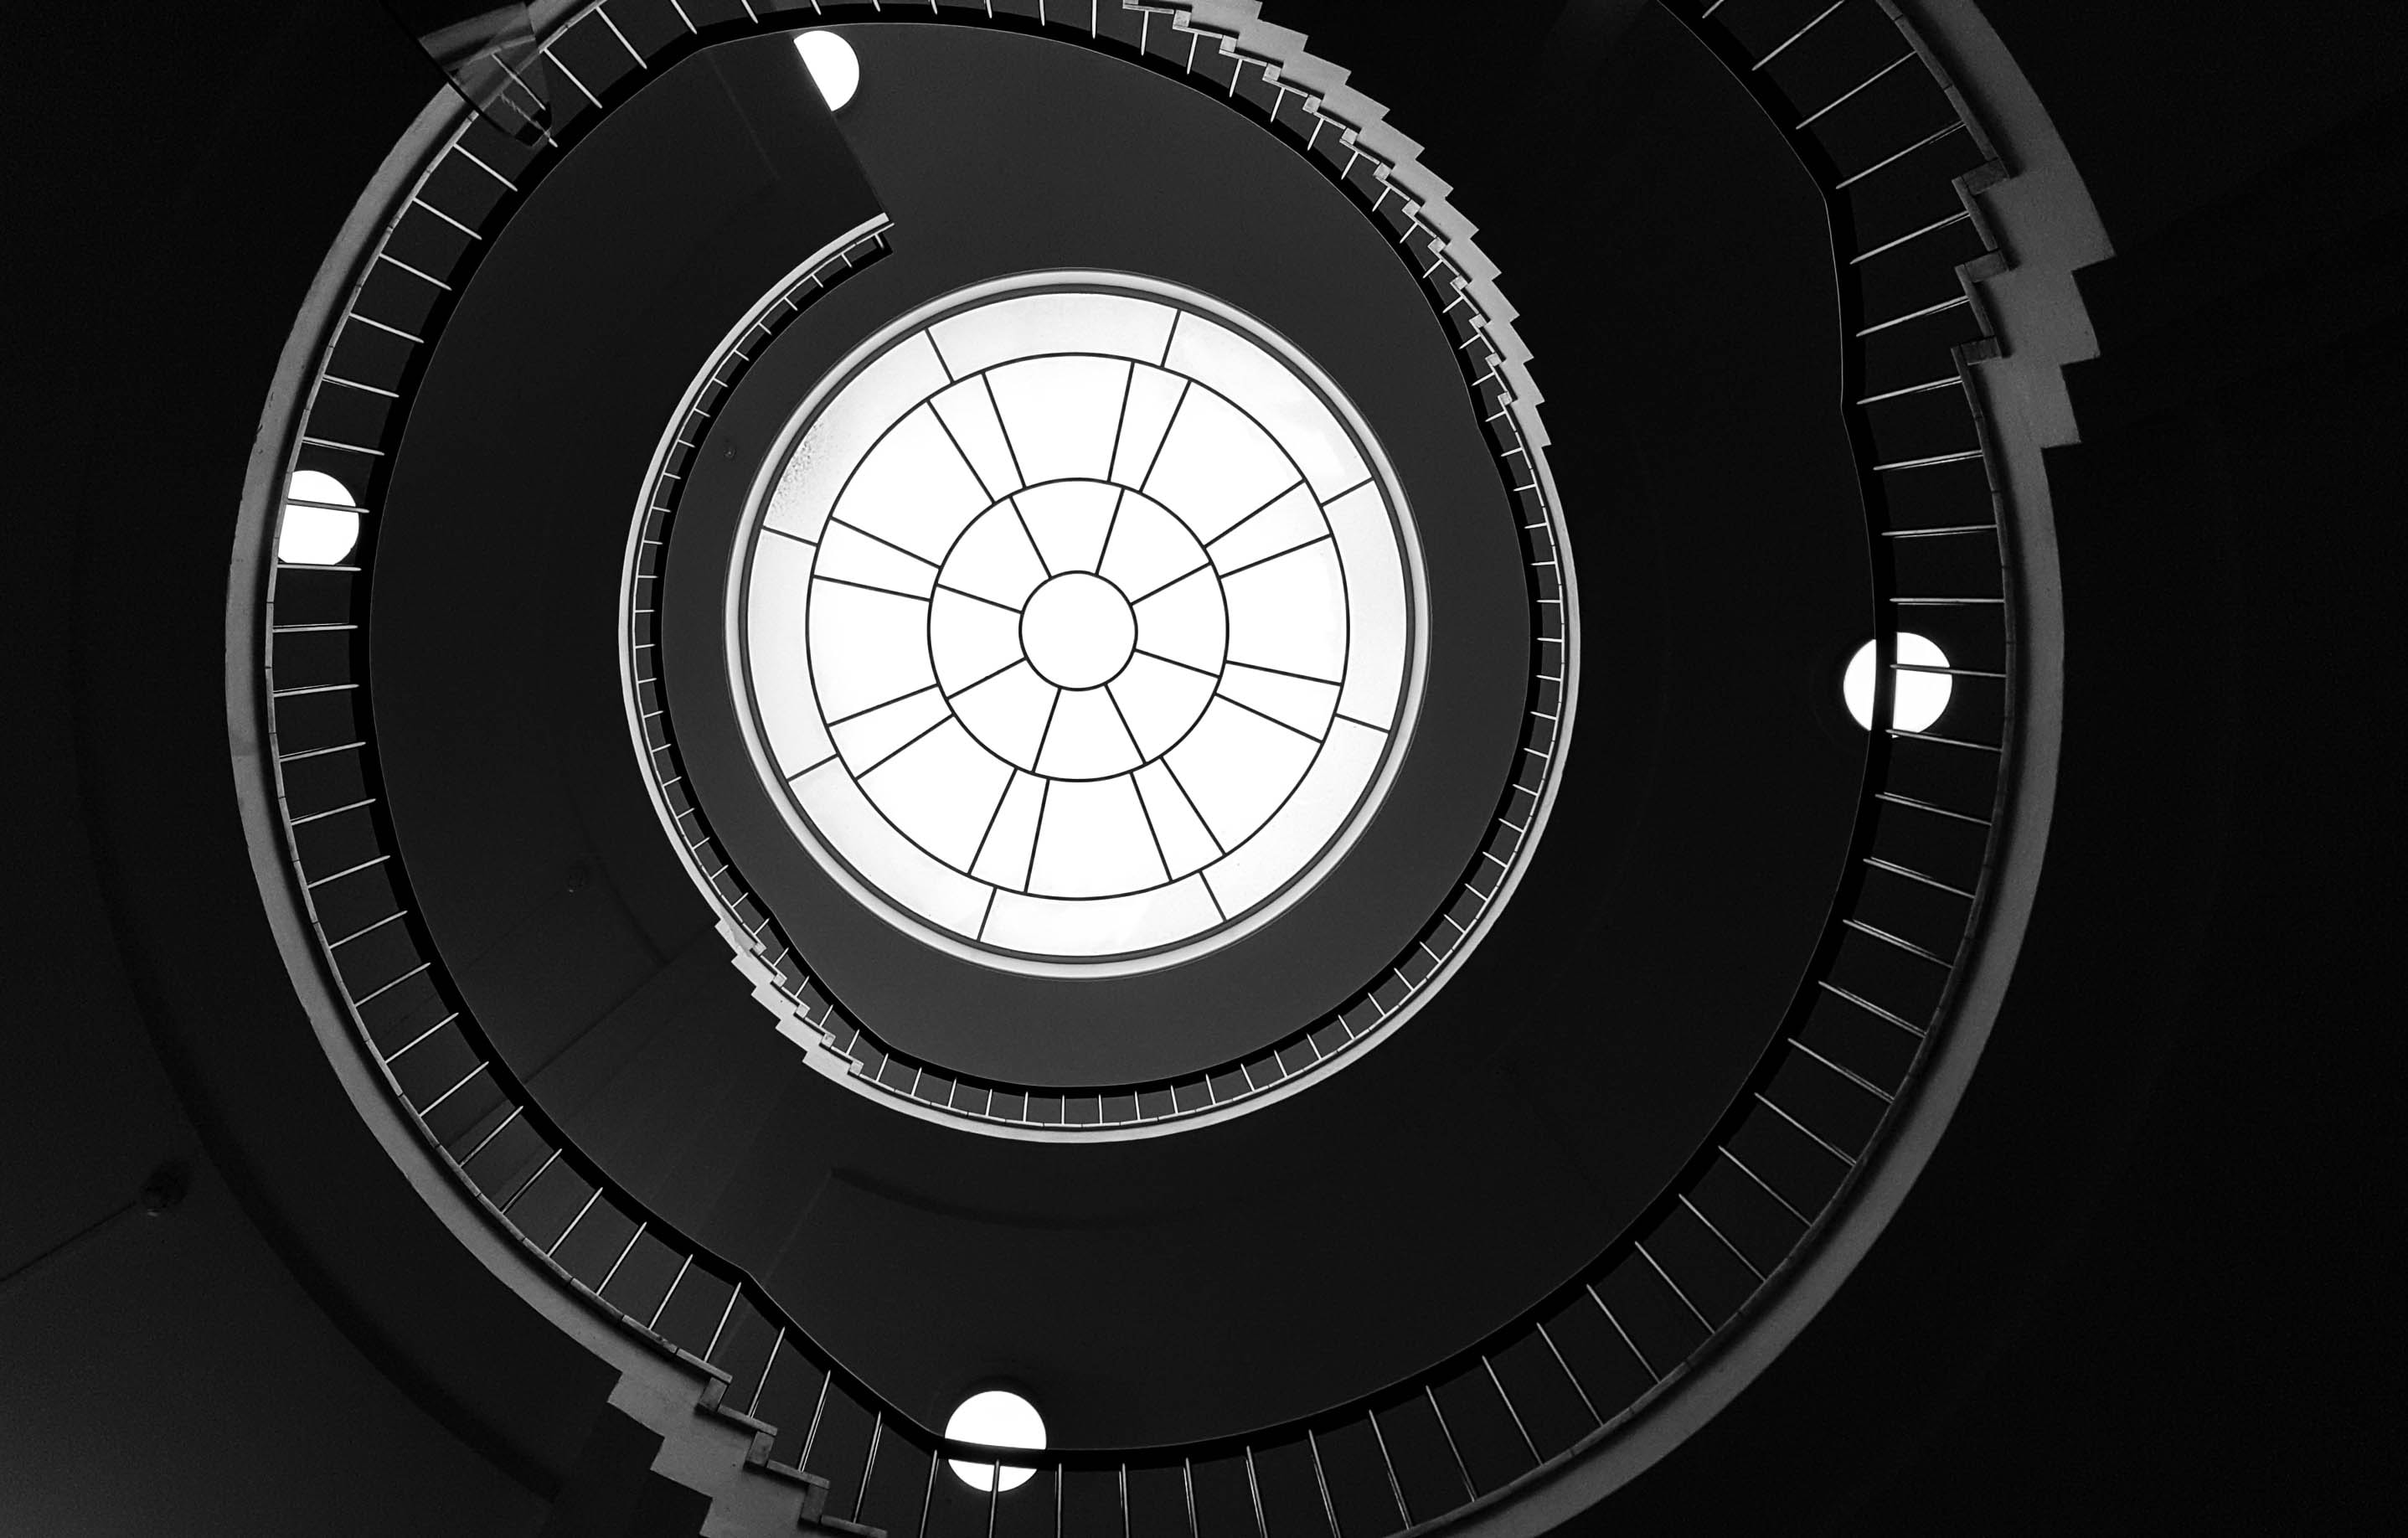 photo of spiral stair